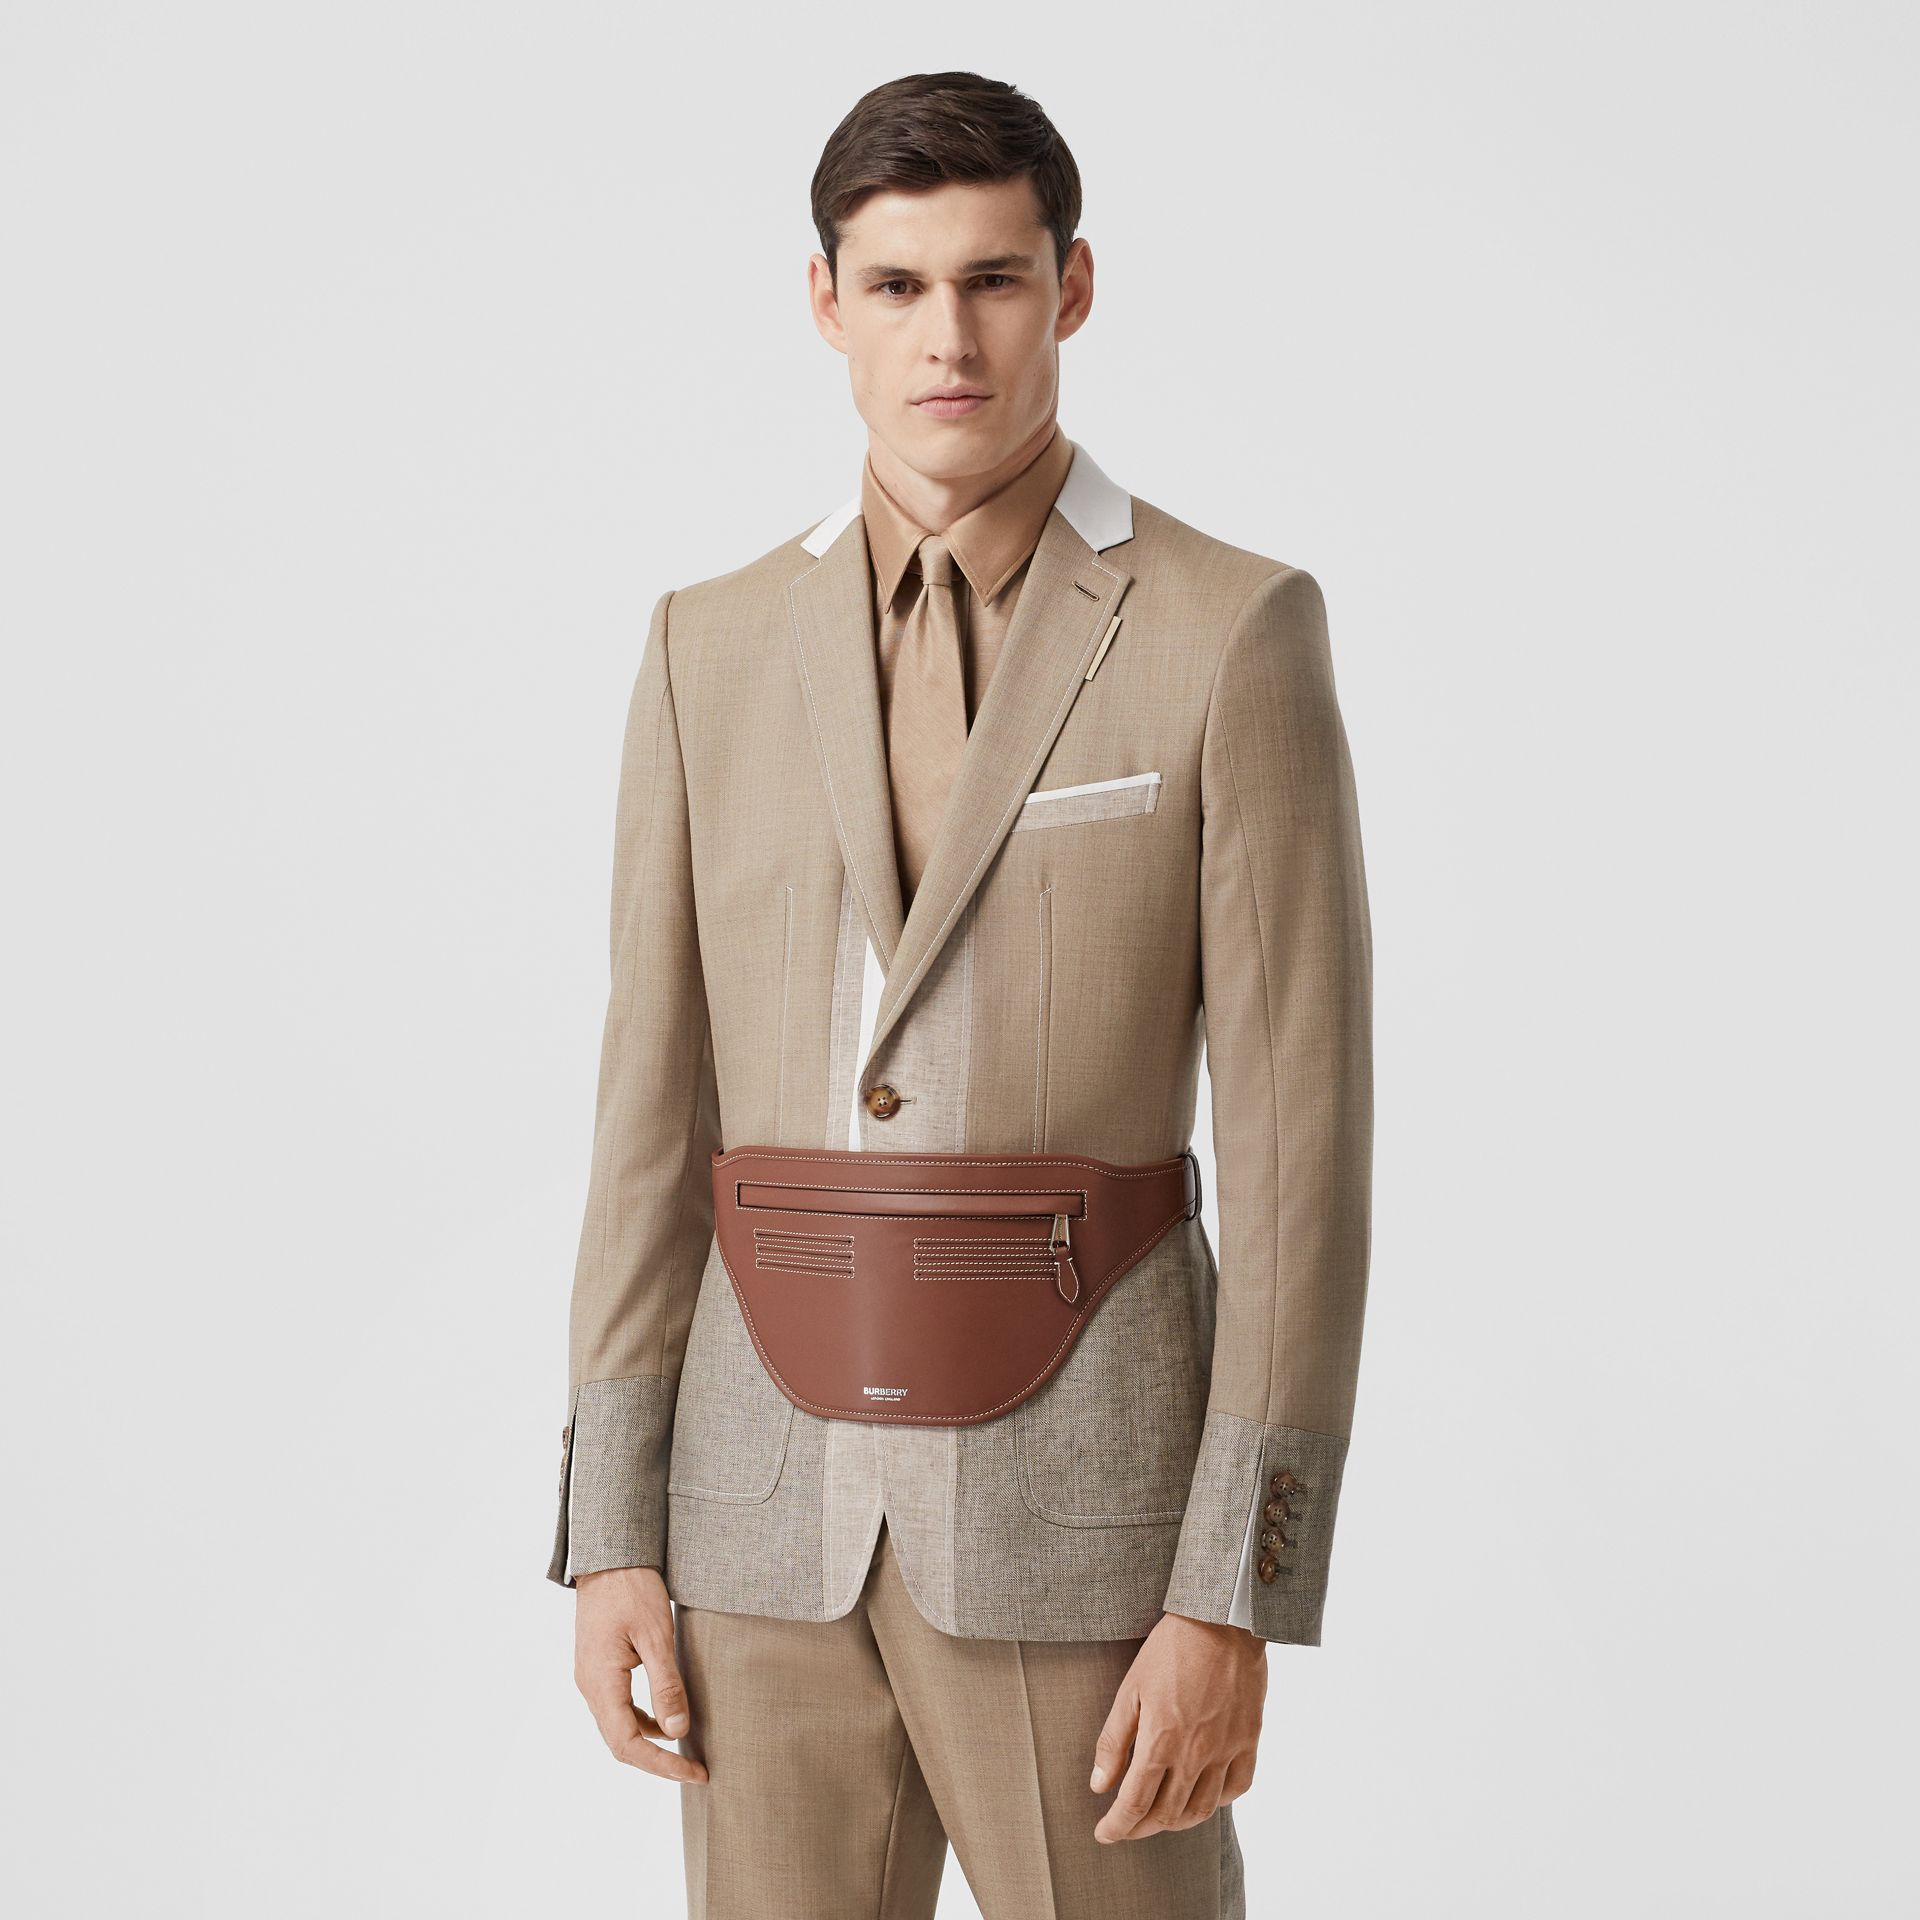 Topstitched Leather Brummell Bum Bag in Tan | Burberry - gallery image 3